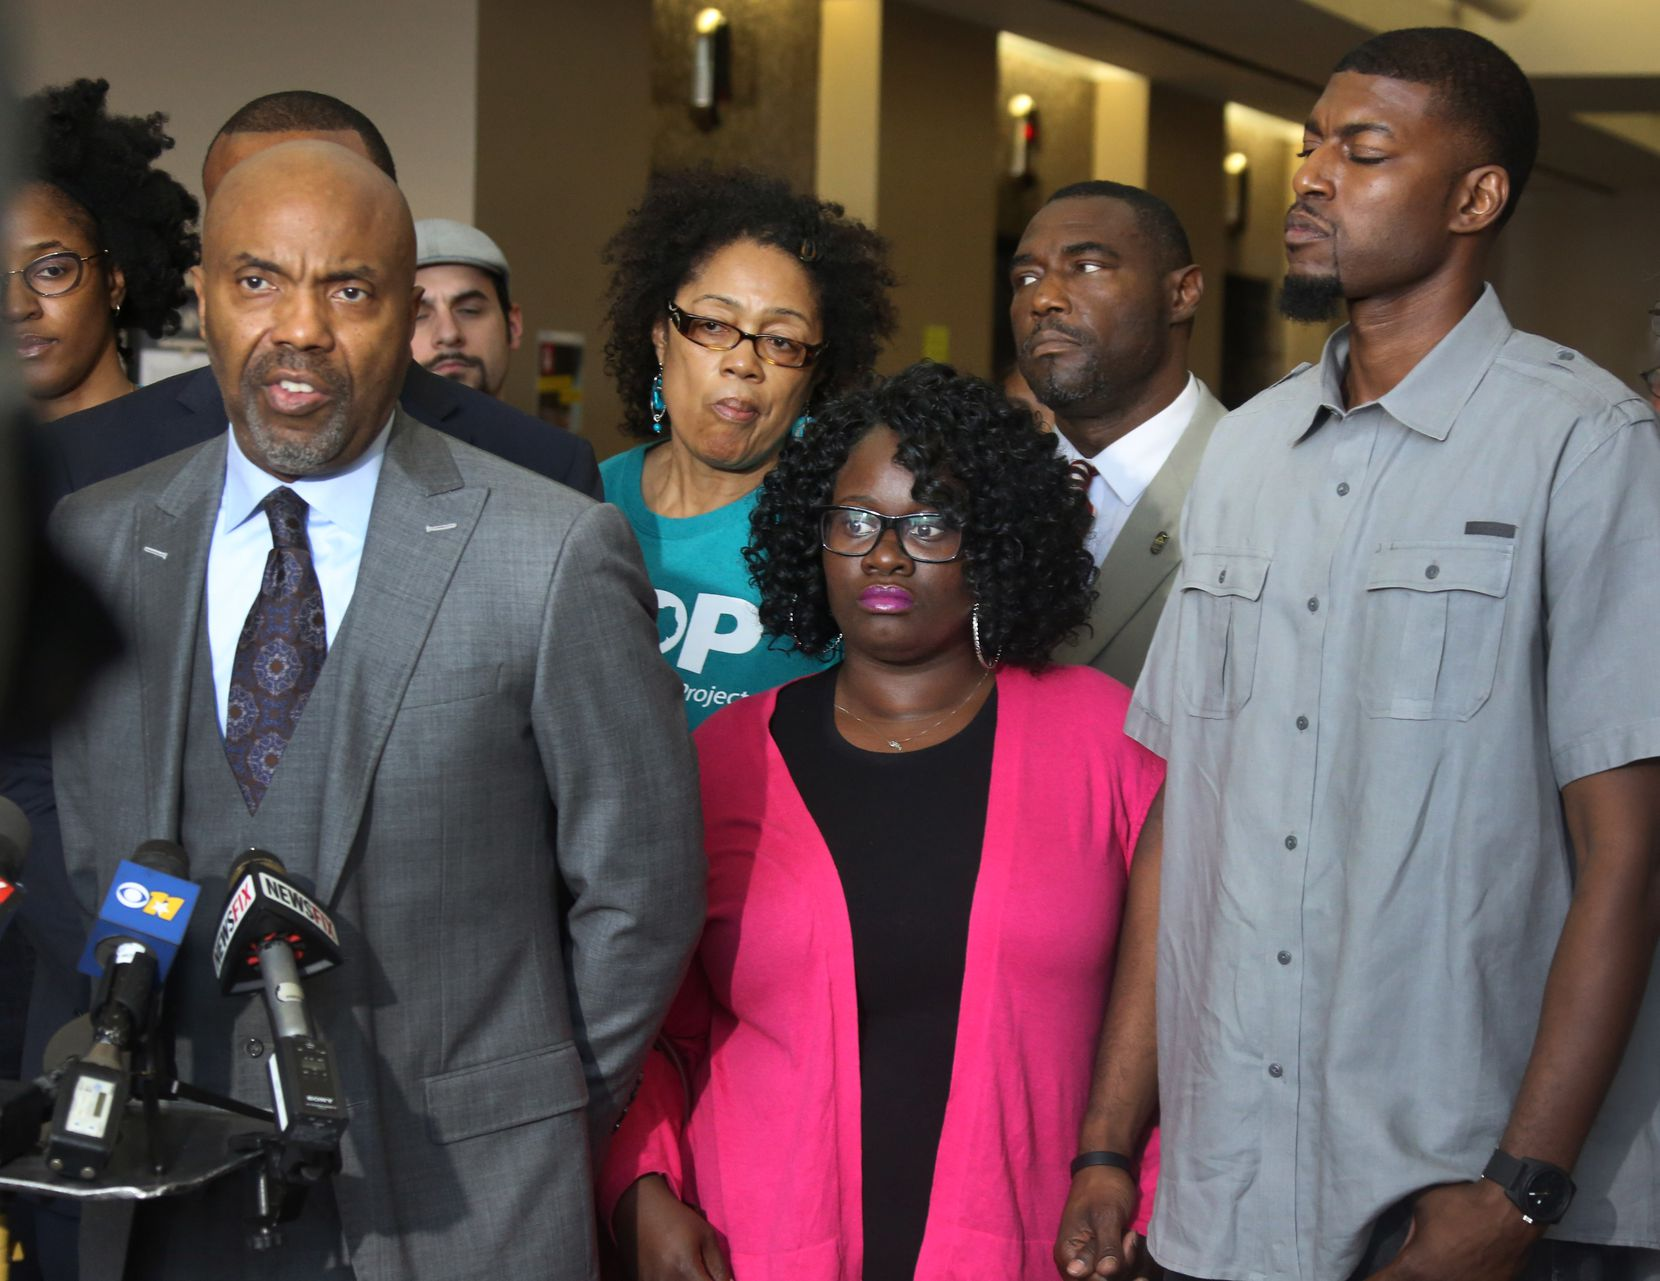 In this May 11, 2017 photo, Attorney Daryl Washington talks with the media as Jordan Edwards' step-mother Charmaine Edwards and father Odell Edwards, center and right, listen at a press conference. Edwards' killing garnered national attention.